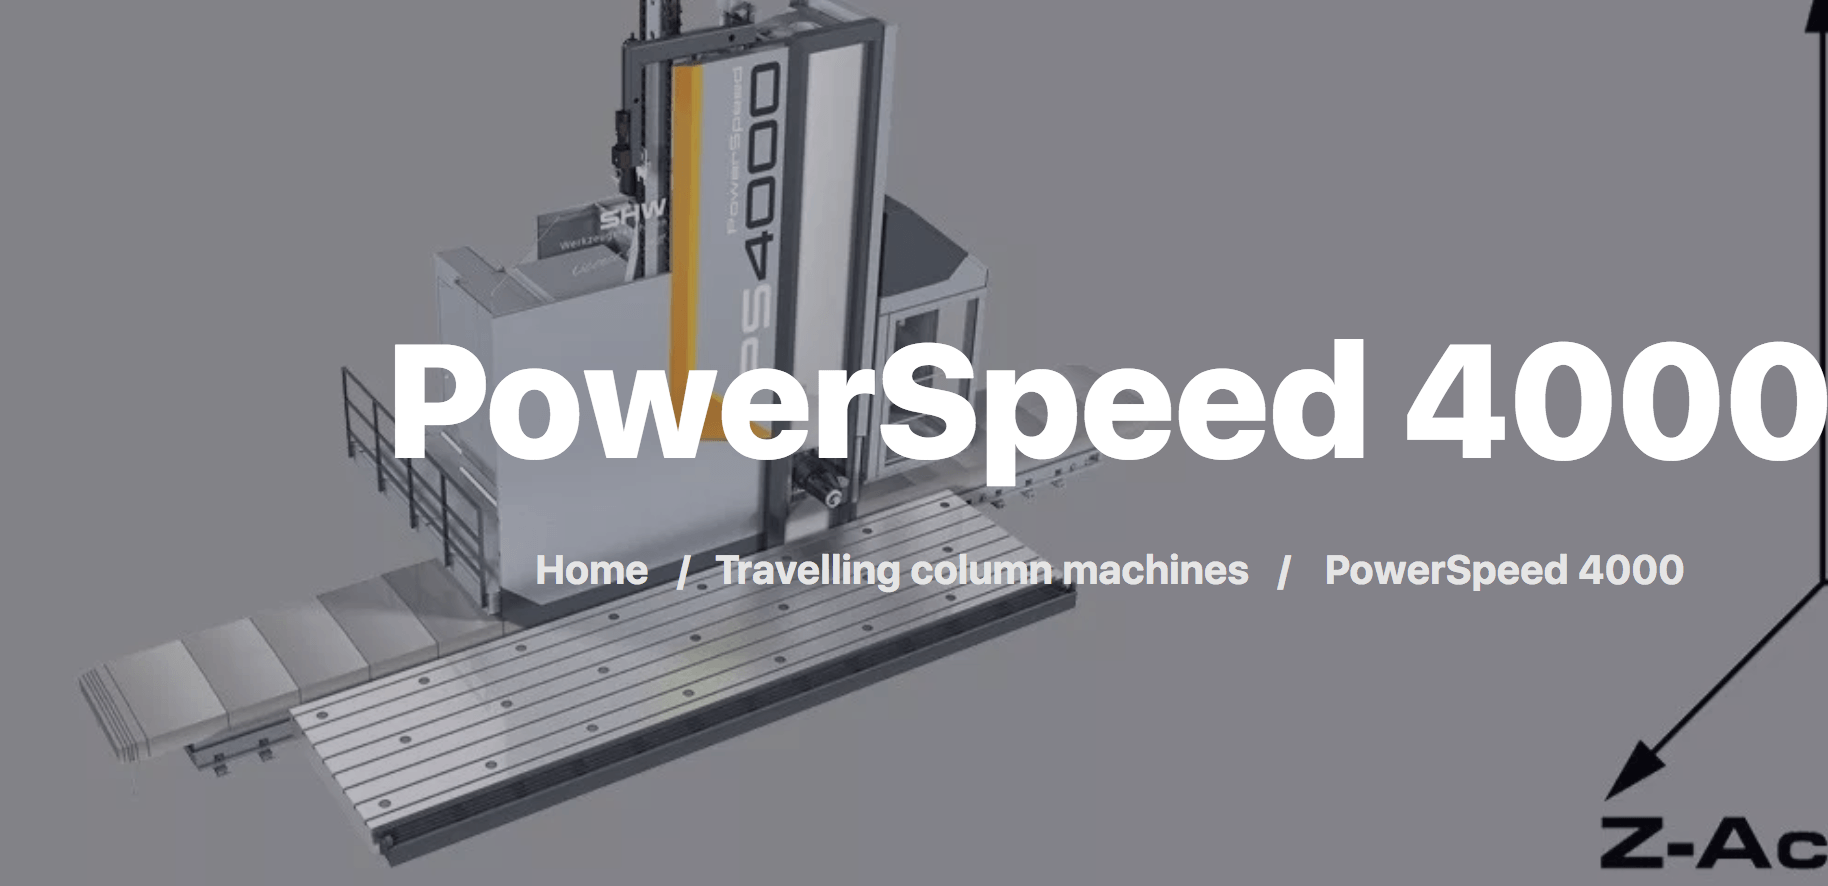 Powerspeed 4000 travelling column machine